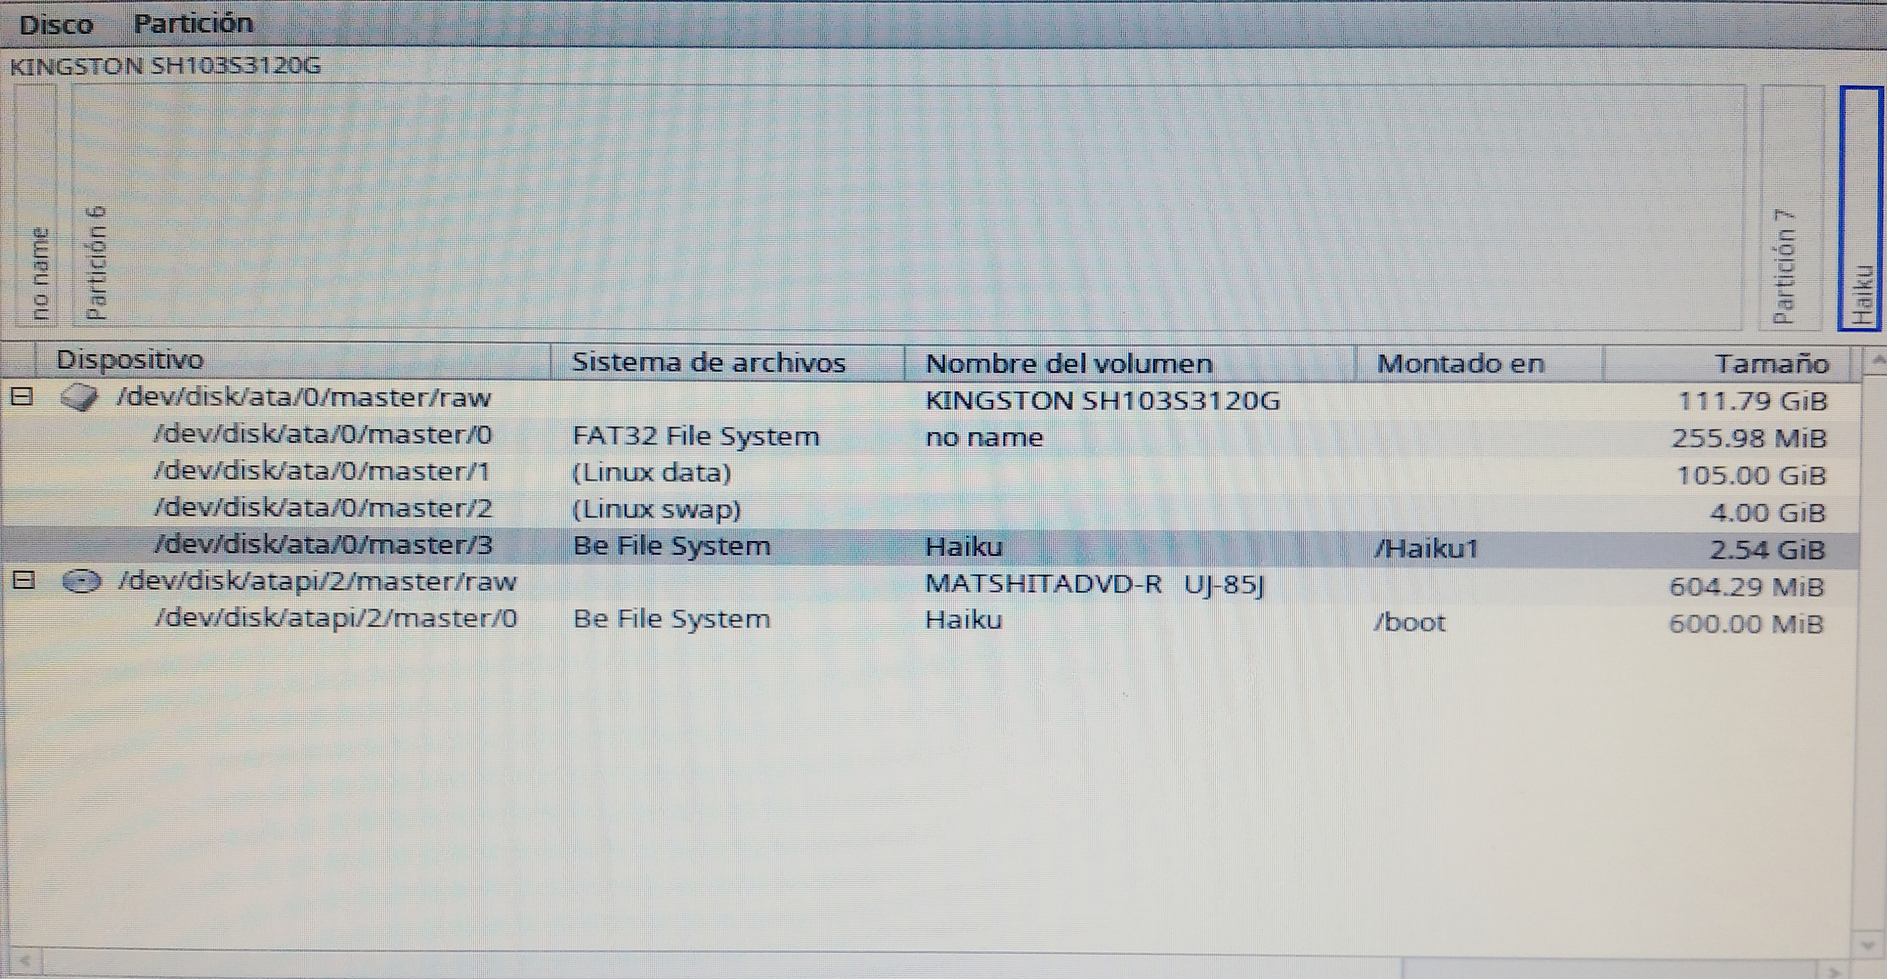 Dual boot with Devuan Linux, patitioning, Grub2 bootloader